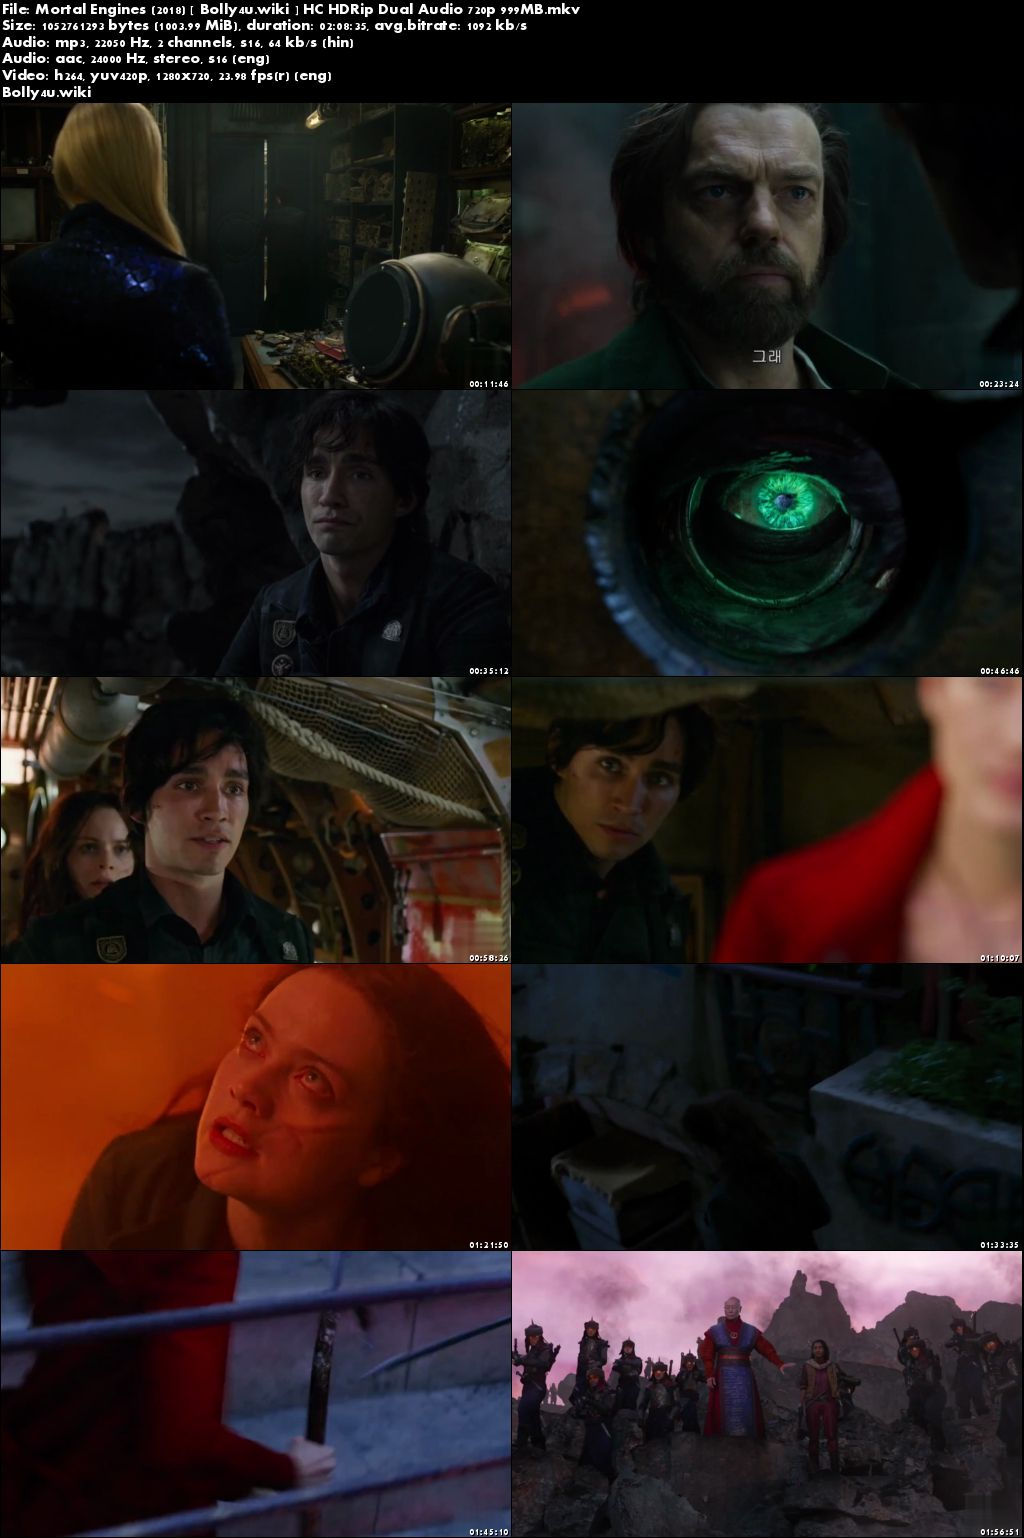 Mortal Engines 2018 HC HDRip 400MB Hindi Dual Audio 480p Download